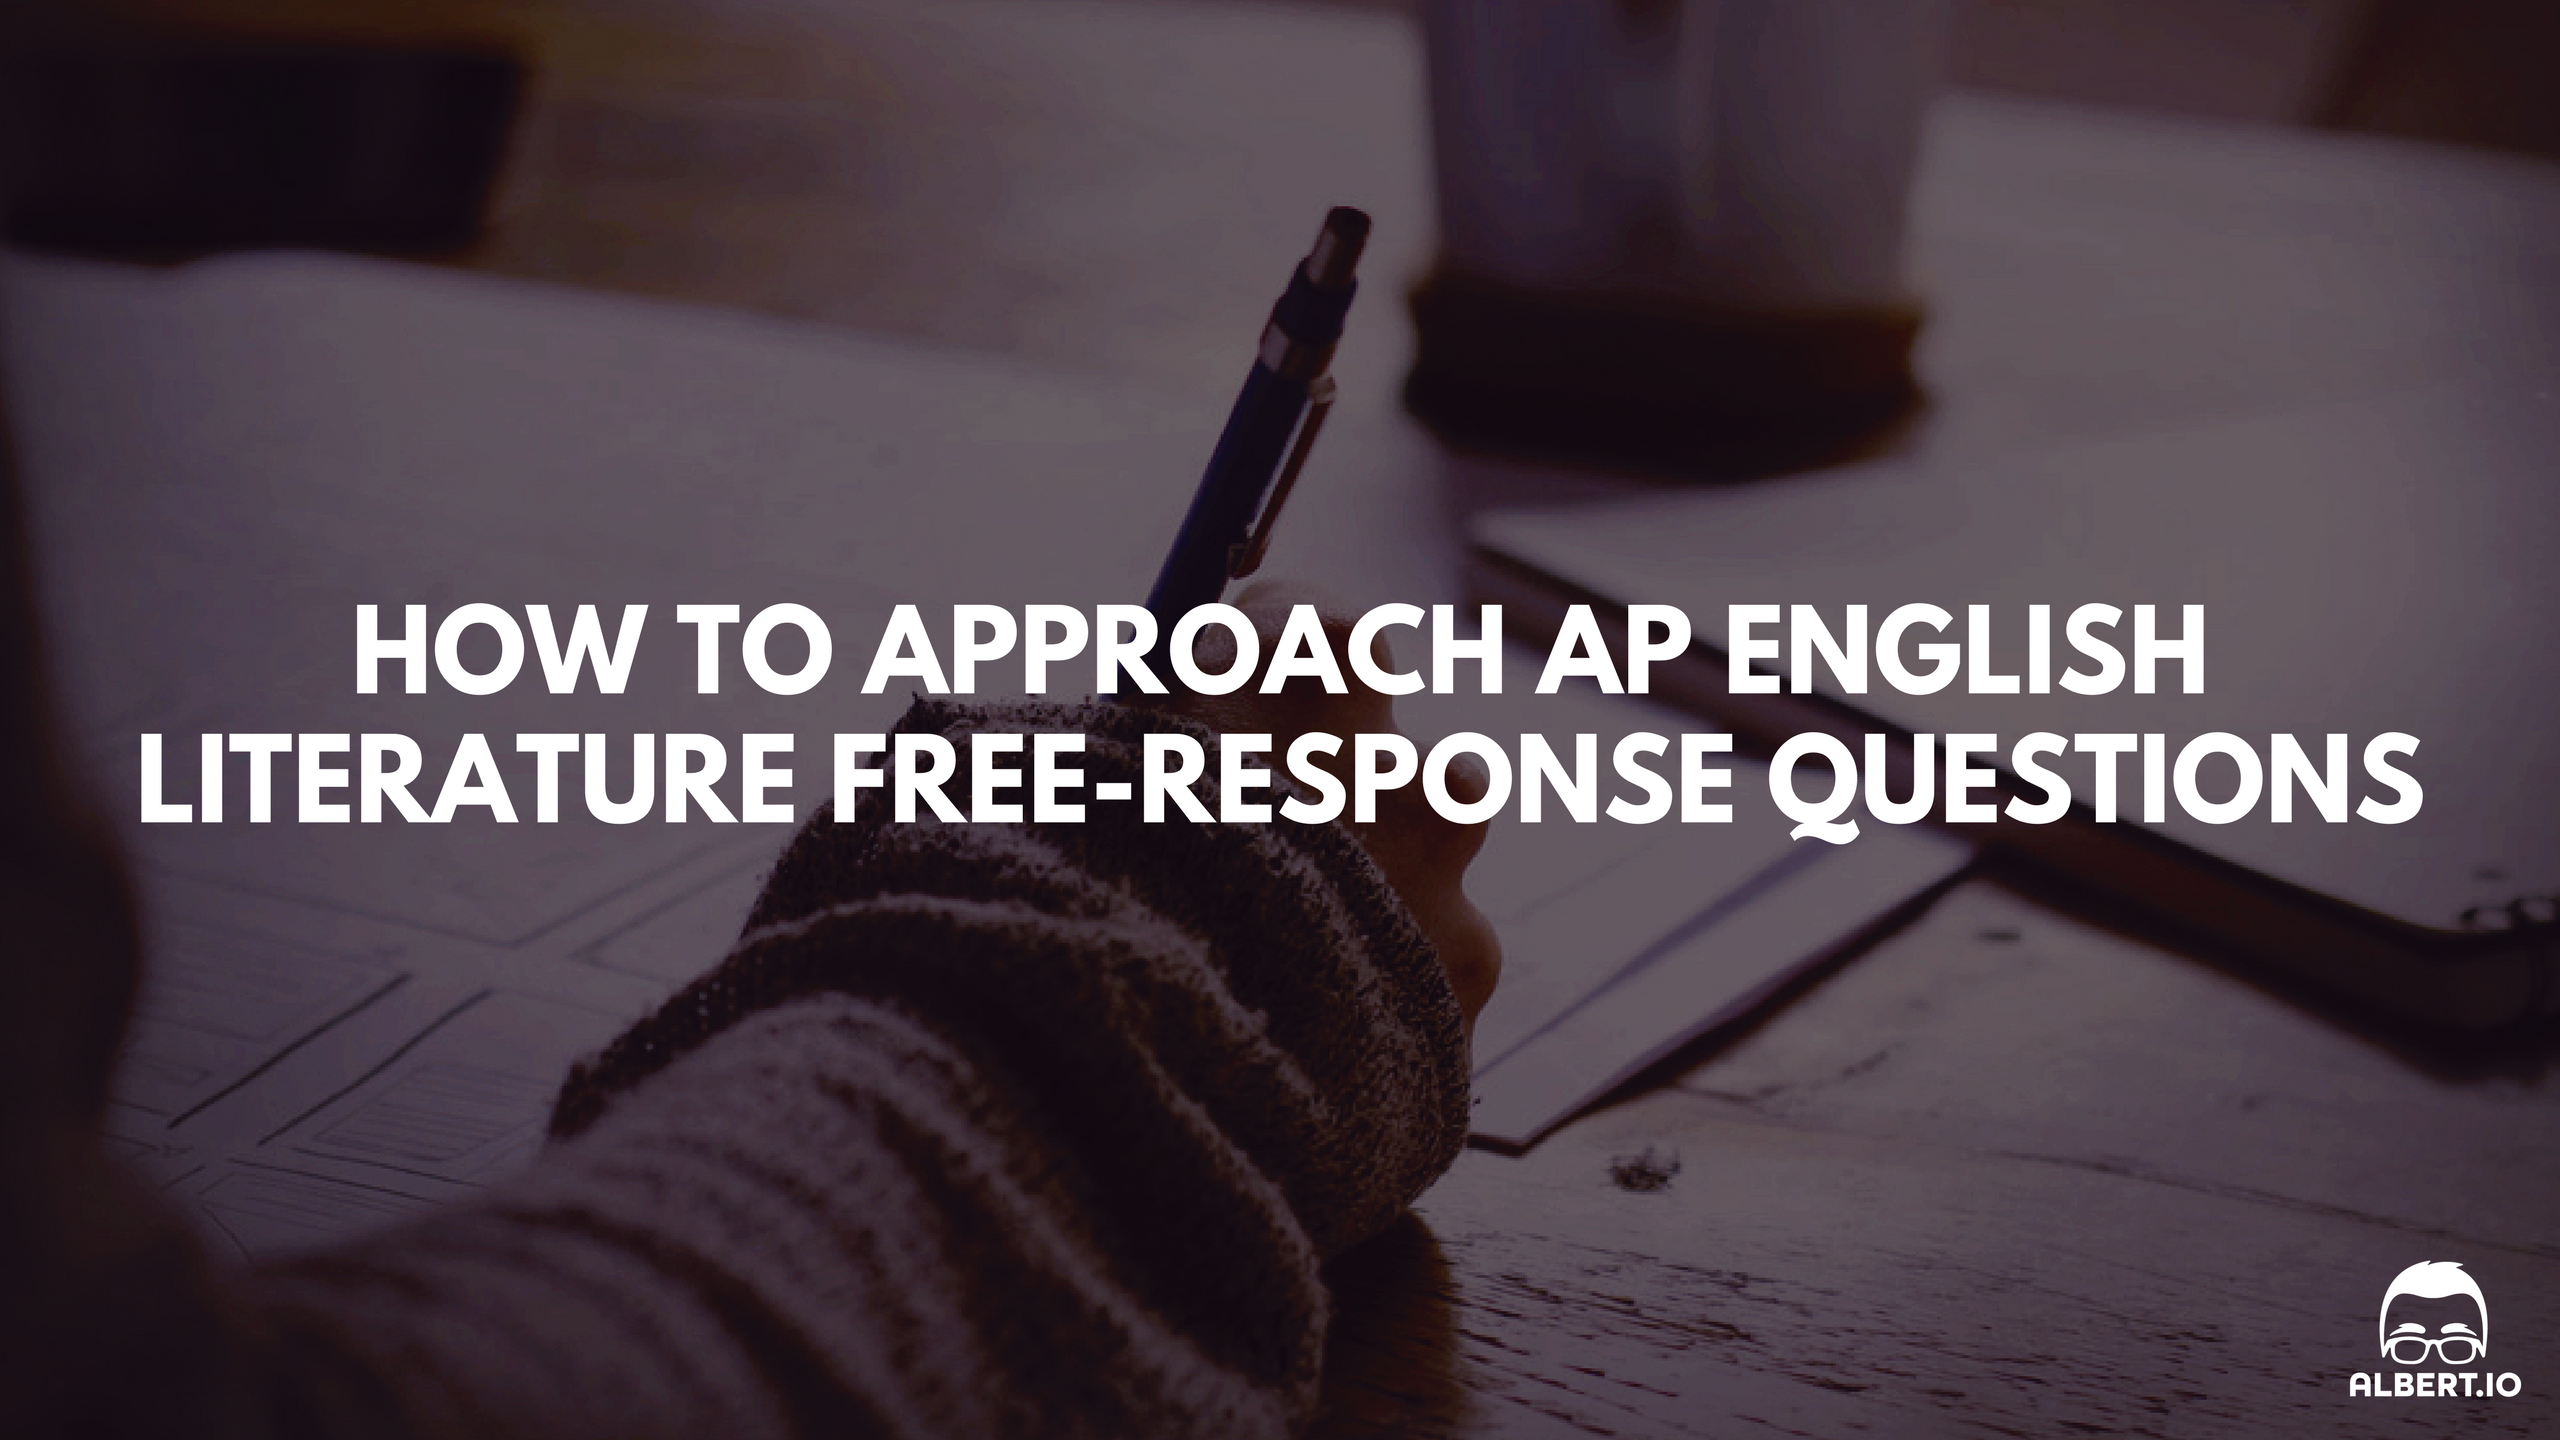 How to Approach AP English Literature Free-Response